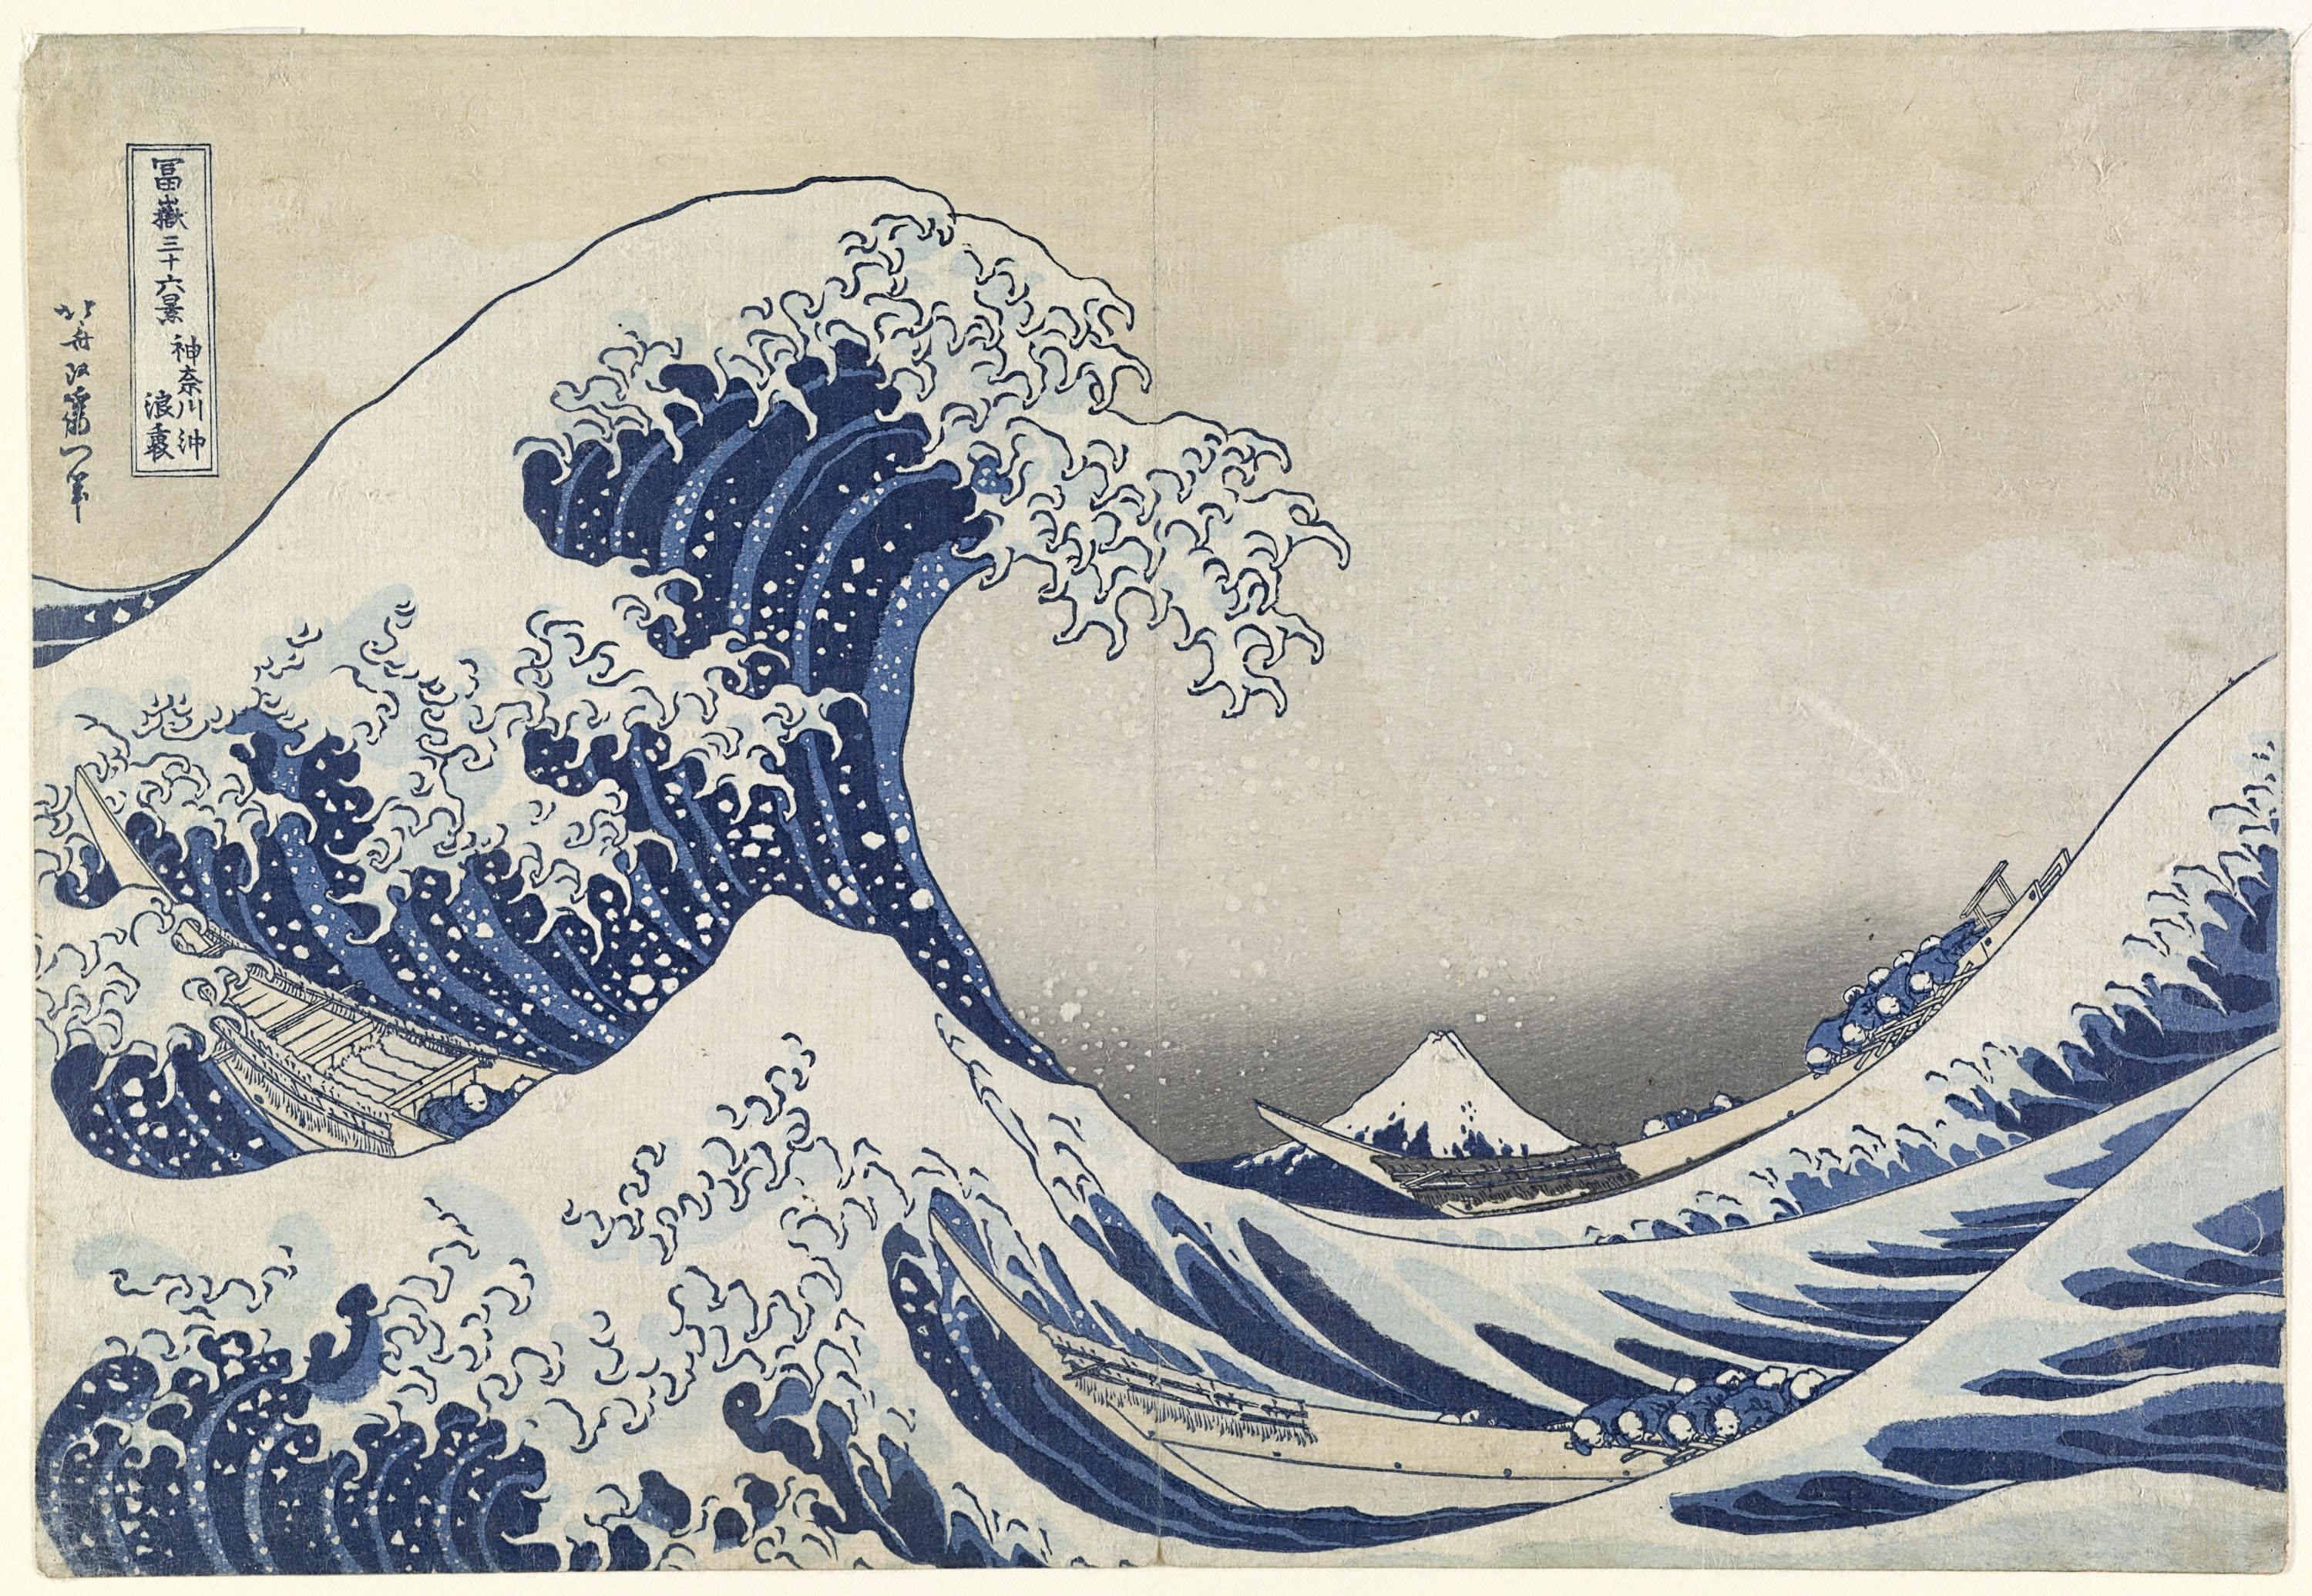 analysis of the great wave off 3 boats, mt fuji and the ferocious curve of the great wave that threatens to consume anything that comes in its way these are the essential elements of this iconic composition titled the great wave off kanagawa by the japanese artist katsushika hokusai – considered to be a legendary ukiyo-e artist .